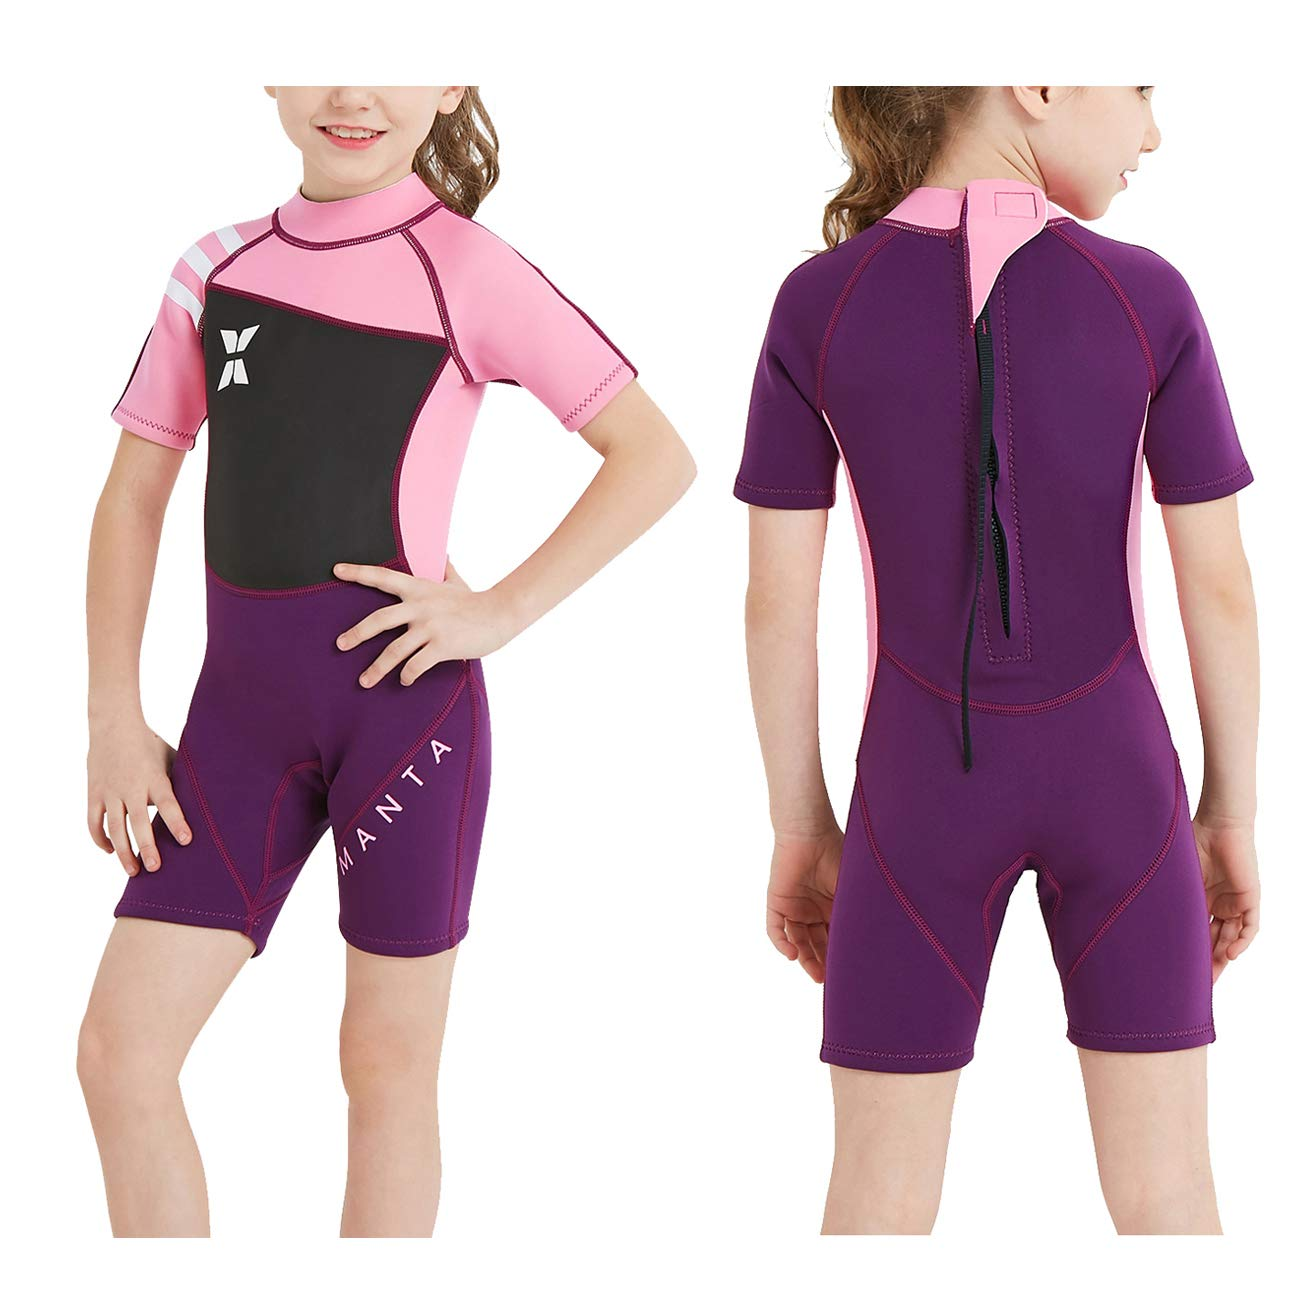 DIVE & SAIL Kids Wetsuit Shorty, 2.5mm Neoprene Thermal Swimsuit, Youth Boys and Girls Wet Suits for Snorkel Diving, Full Suit and Shorty Swimsuit (Girl's Shorty-Pink, Kids L Size) by DIVE & SAIL